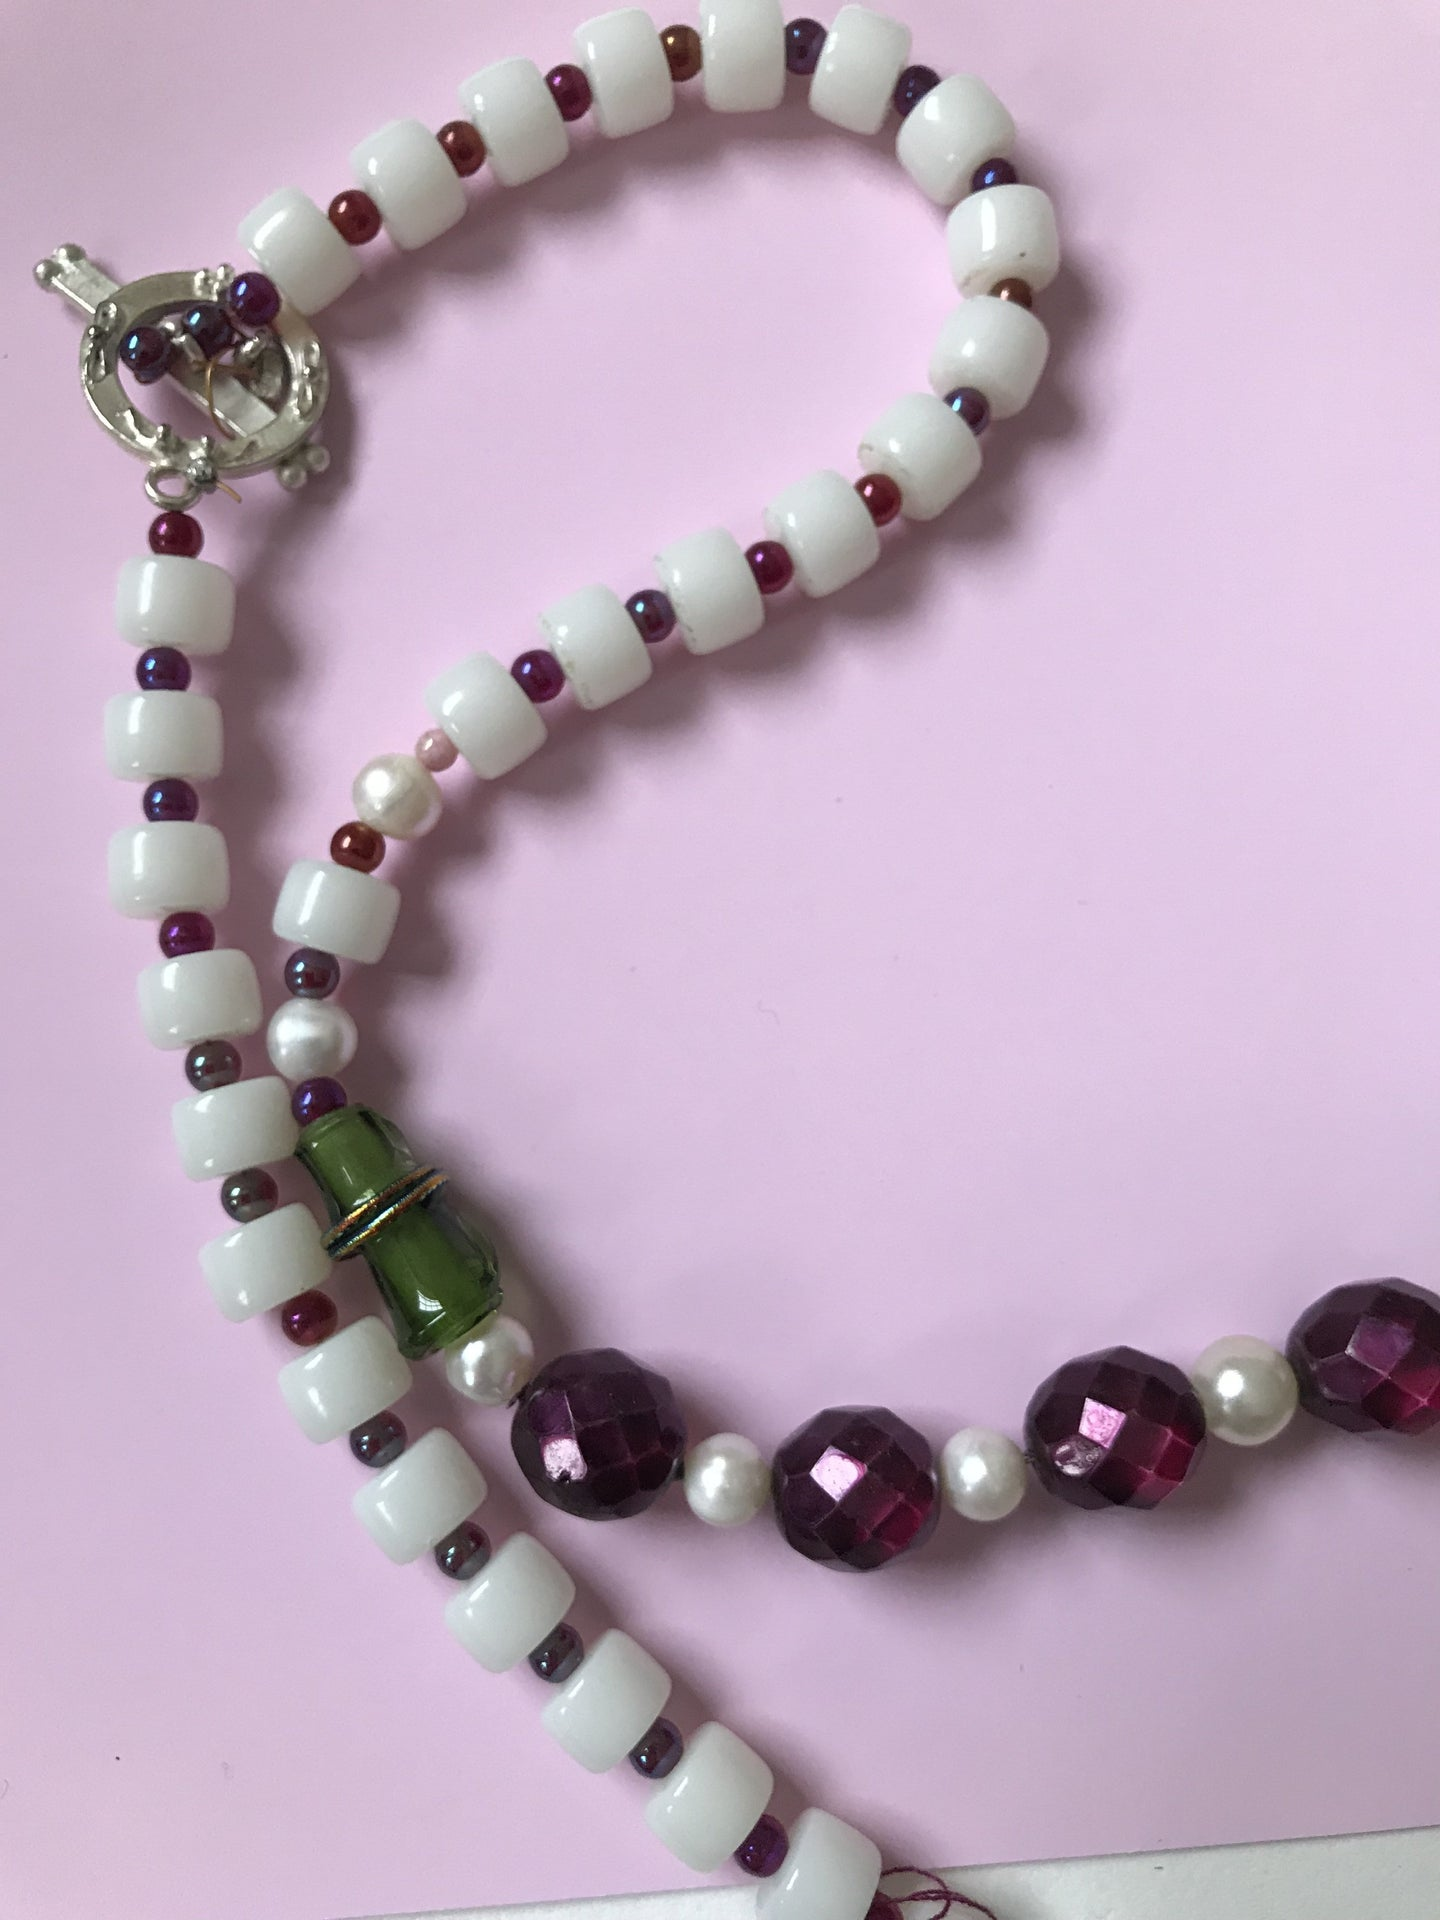 A two color, double patterned necklace